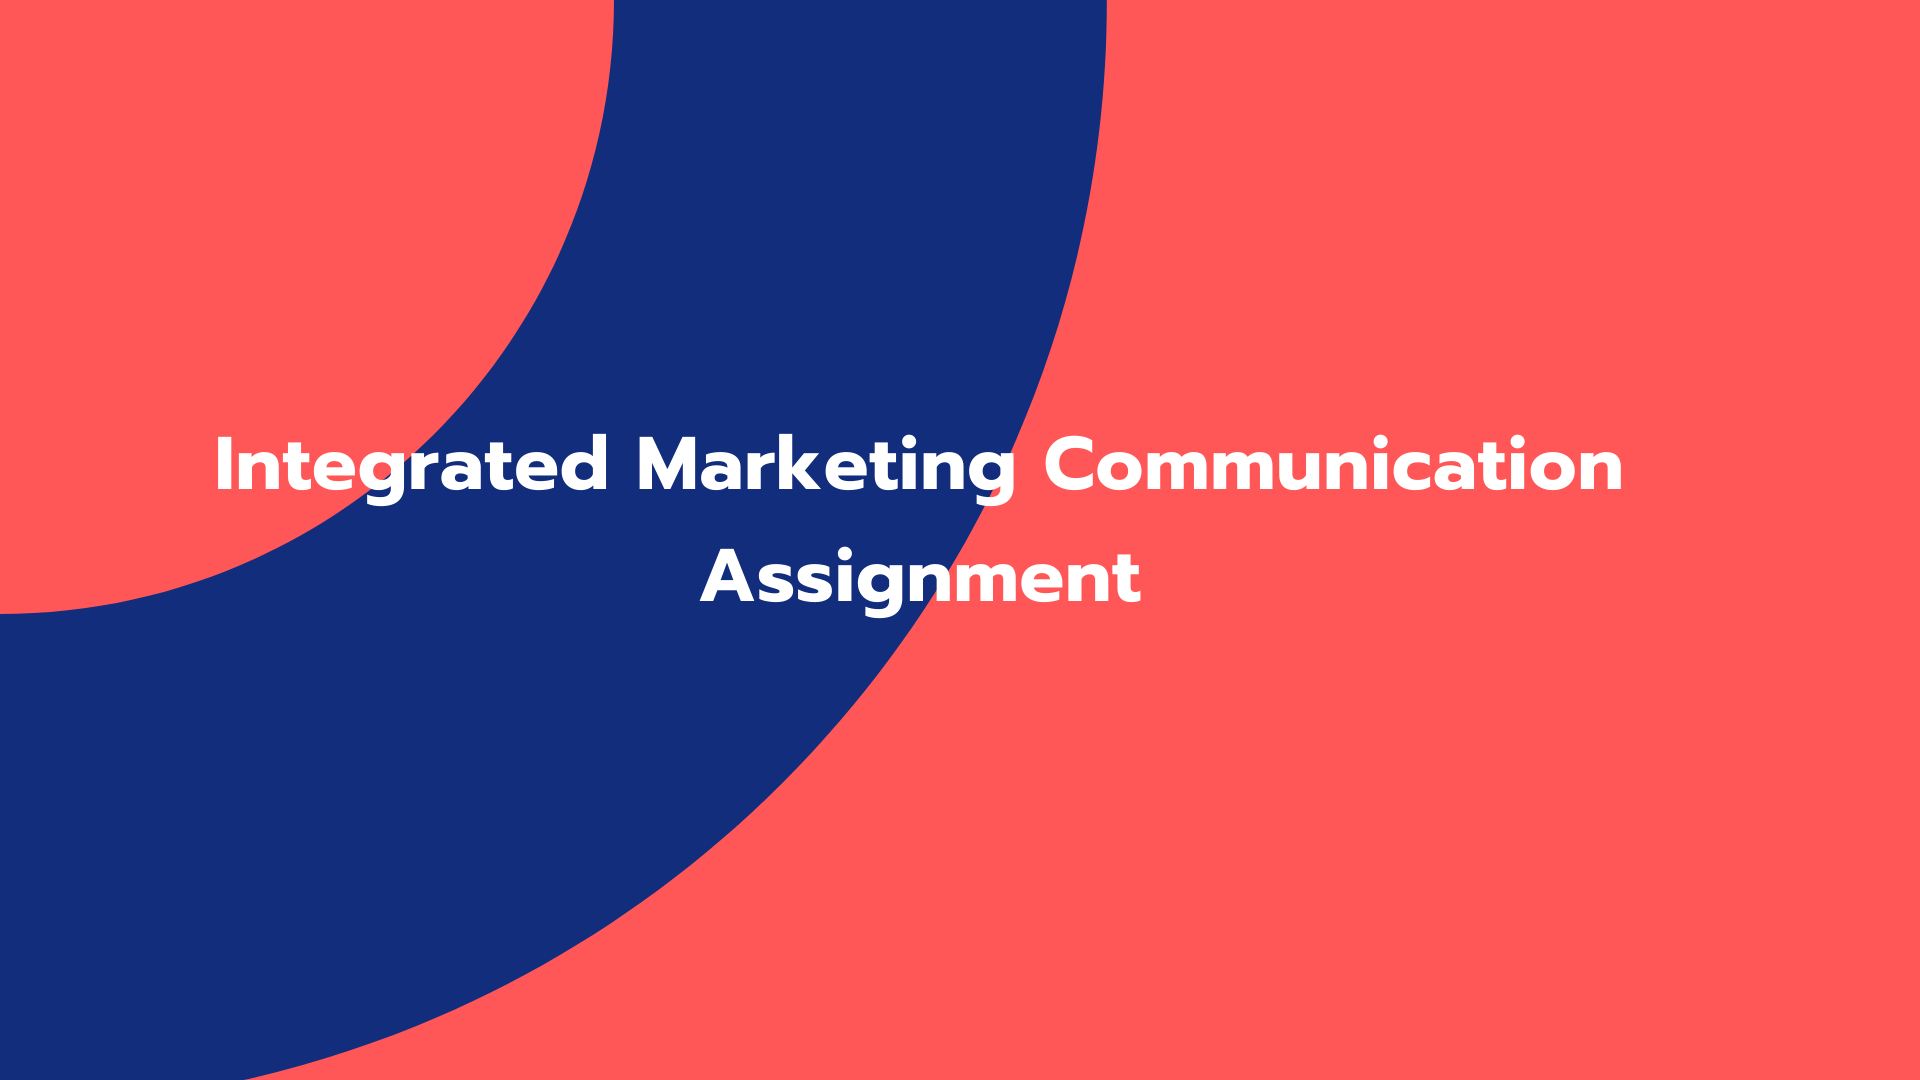 Integrated Marketing Communication Assignment